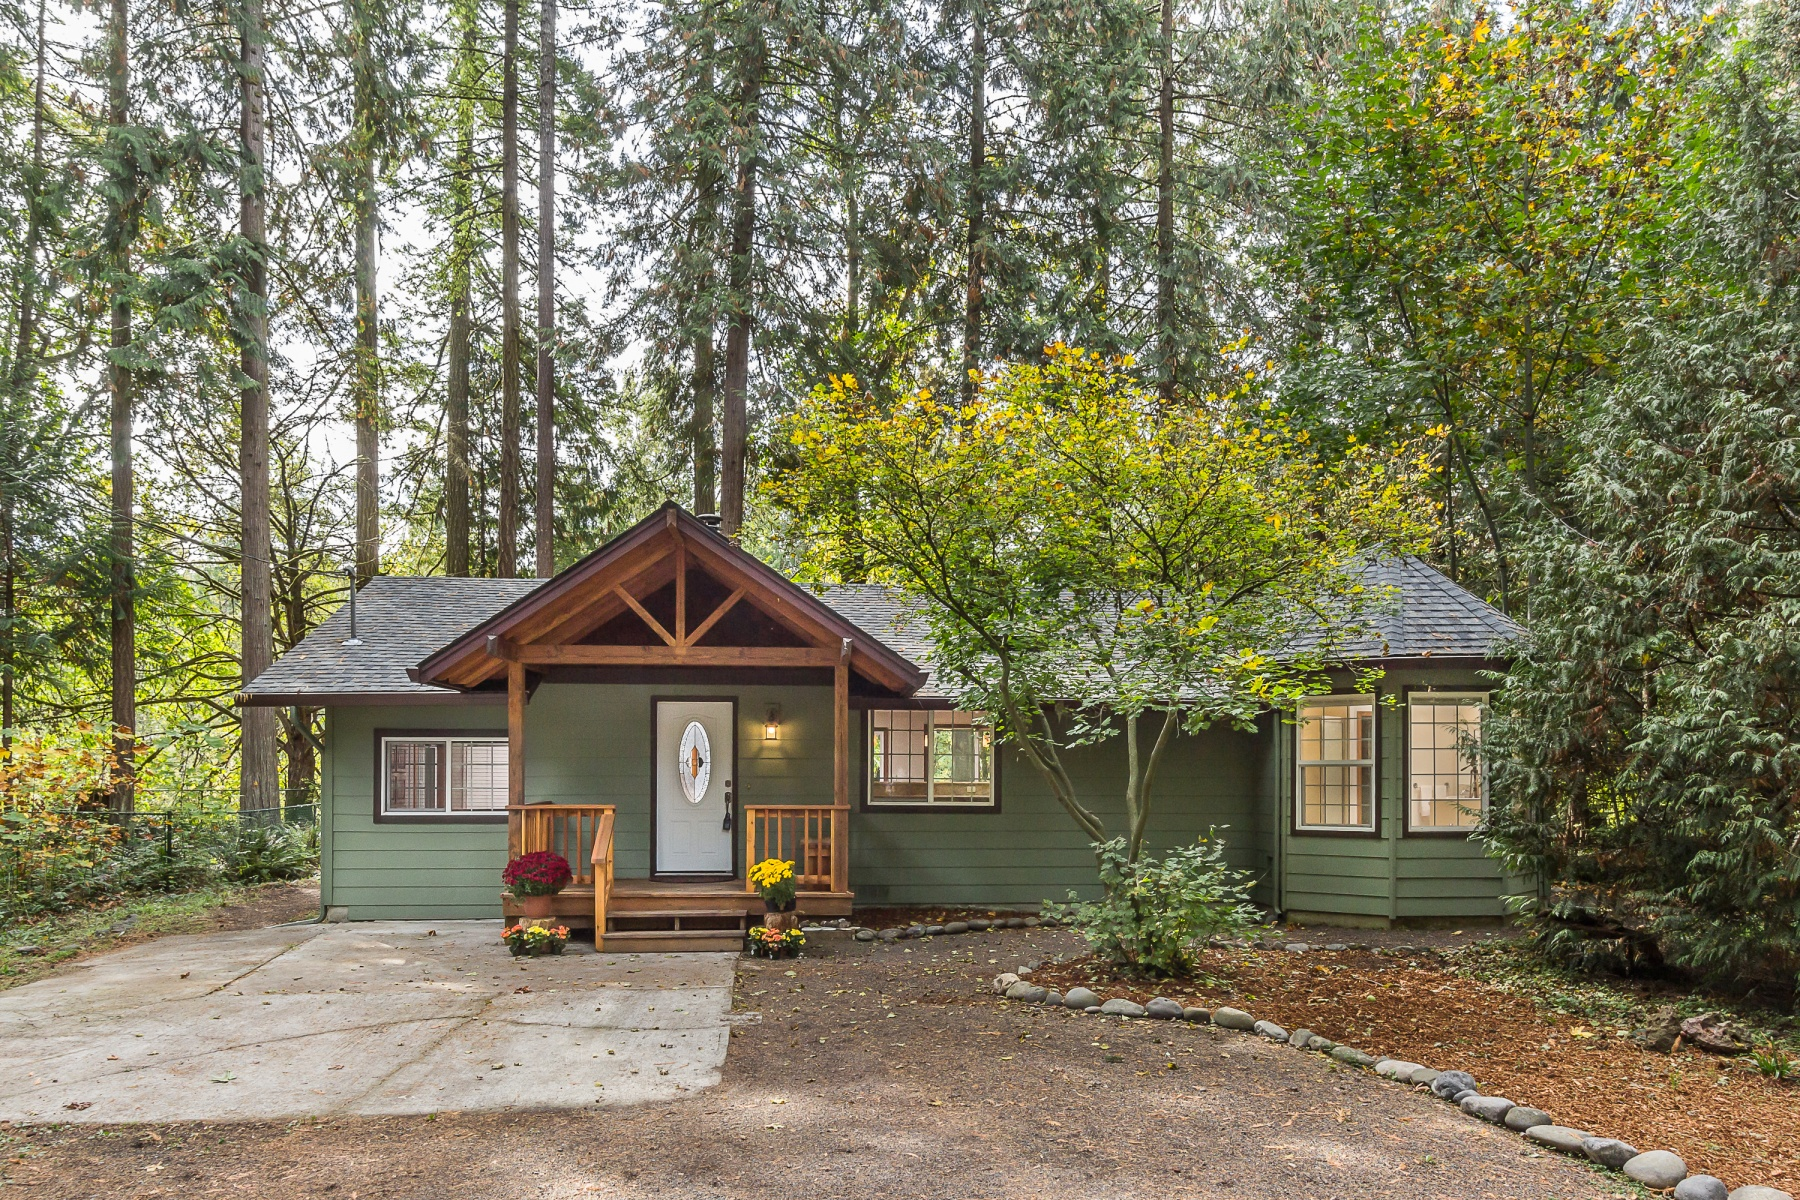 Single Family Home for Sale at 29059 SE WOODS, EAGLE CREEK, OR 29059 SE WOODS Rd Eagle Creek, Oregon 97022 United States